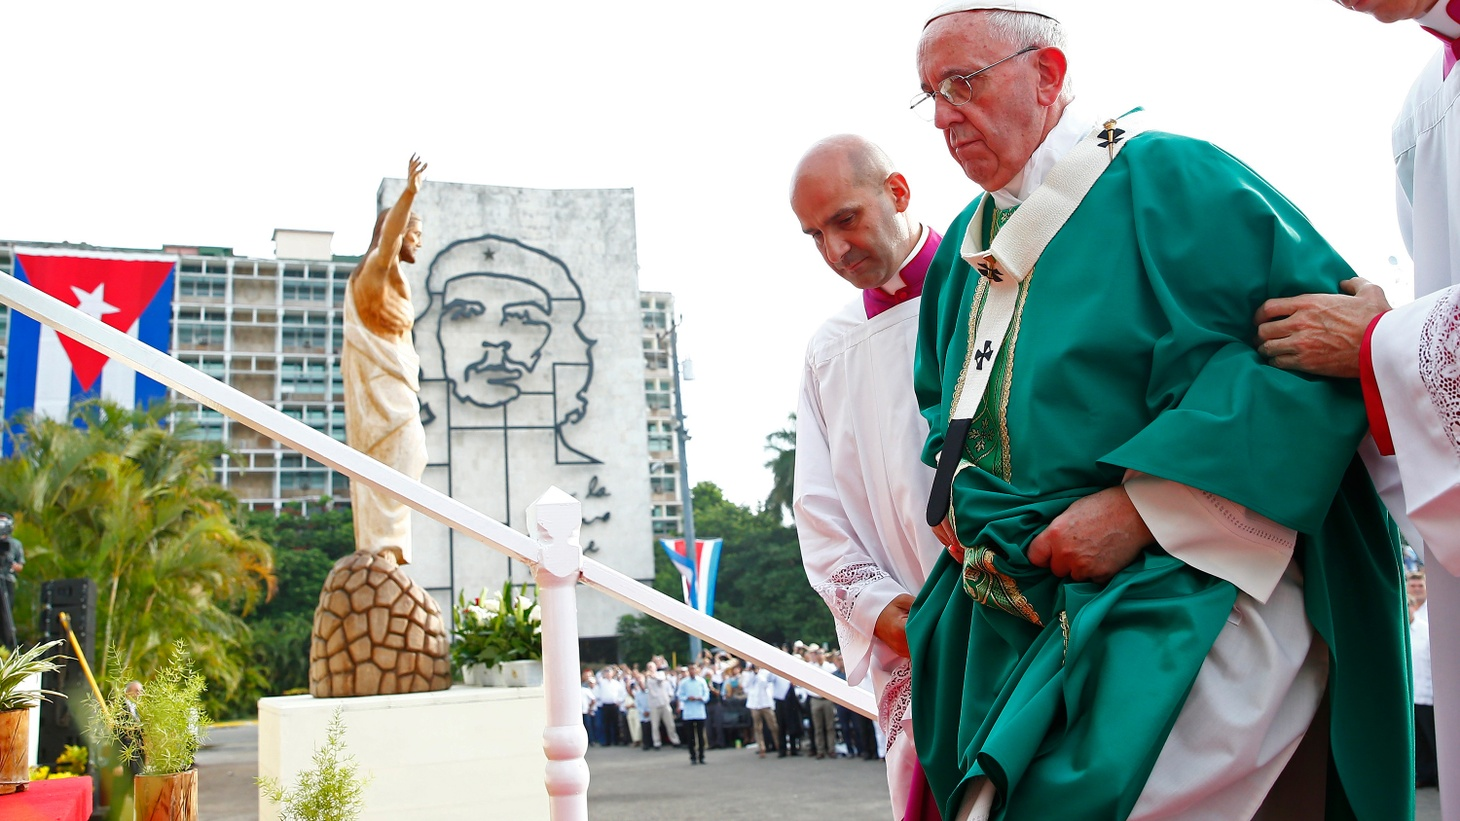 """Pope Francis helped renew diplomatic relations between the US and Cuba. Now he's visiting both countries, with a lot to say about their different ideologies, economies and treatment of those Jesus called """"the least among us."""""""